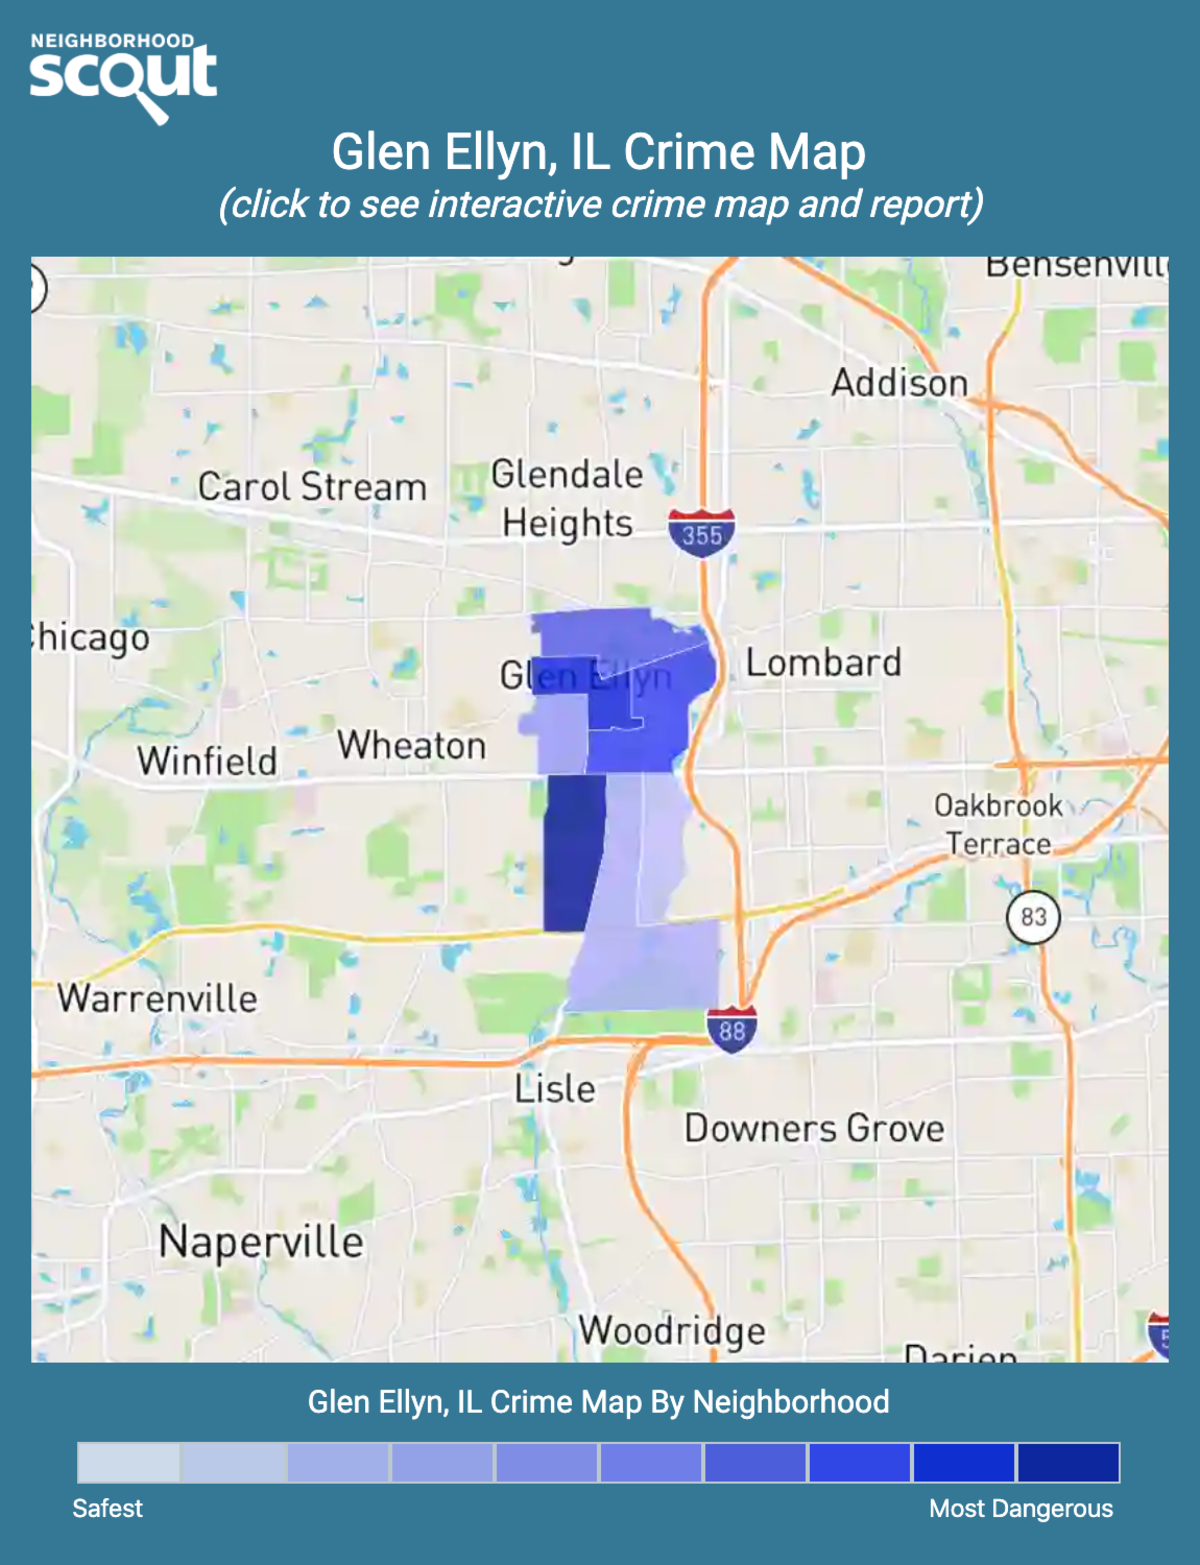 Glen Ellyn, Illinois crime map